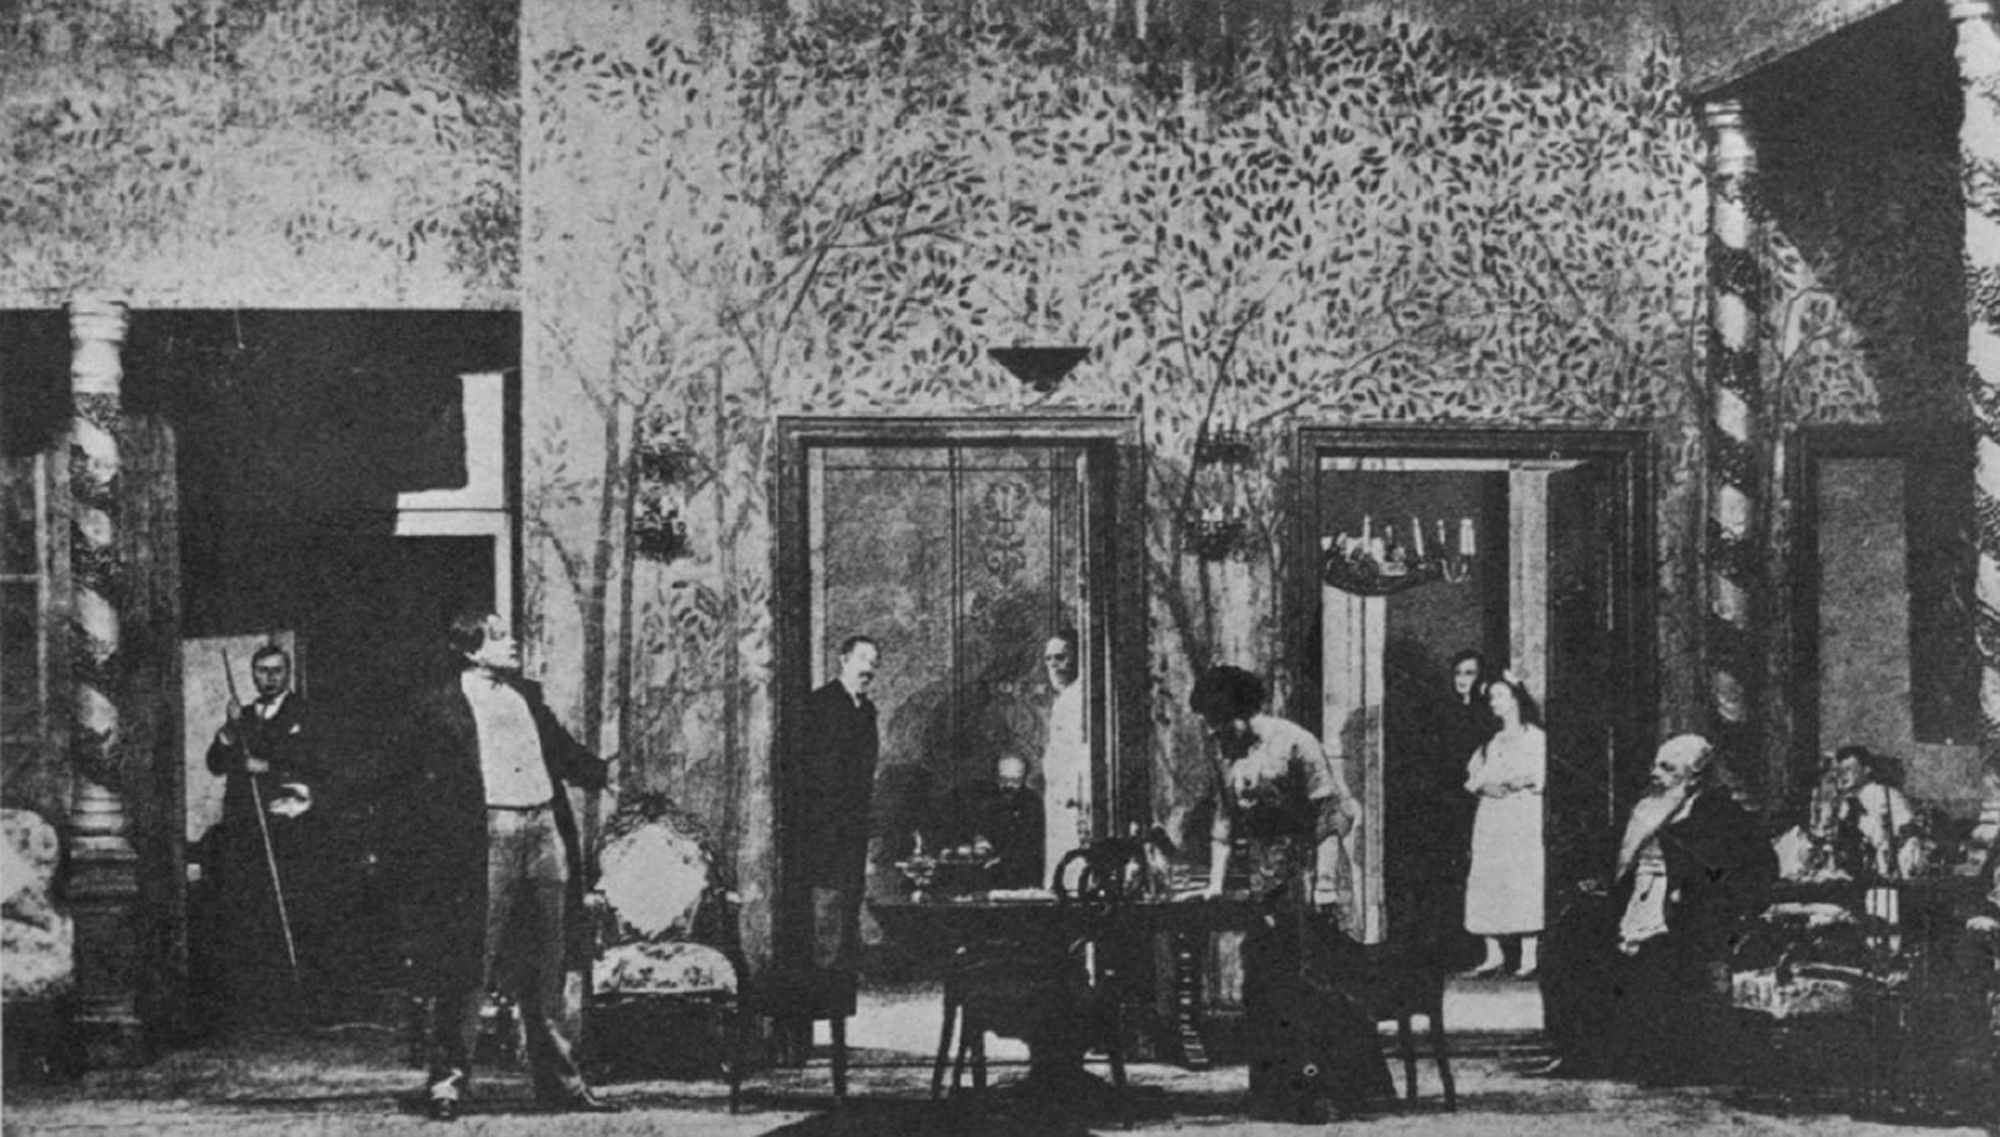 Photograph of Stanislavki's 1903 production of Chekov's The Cherry Orchard